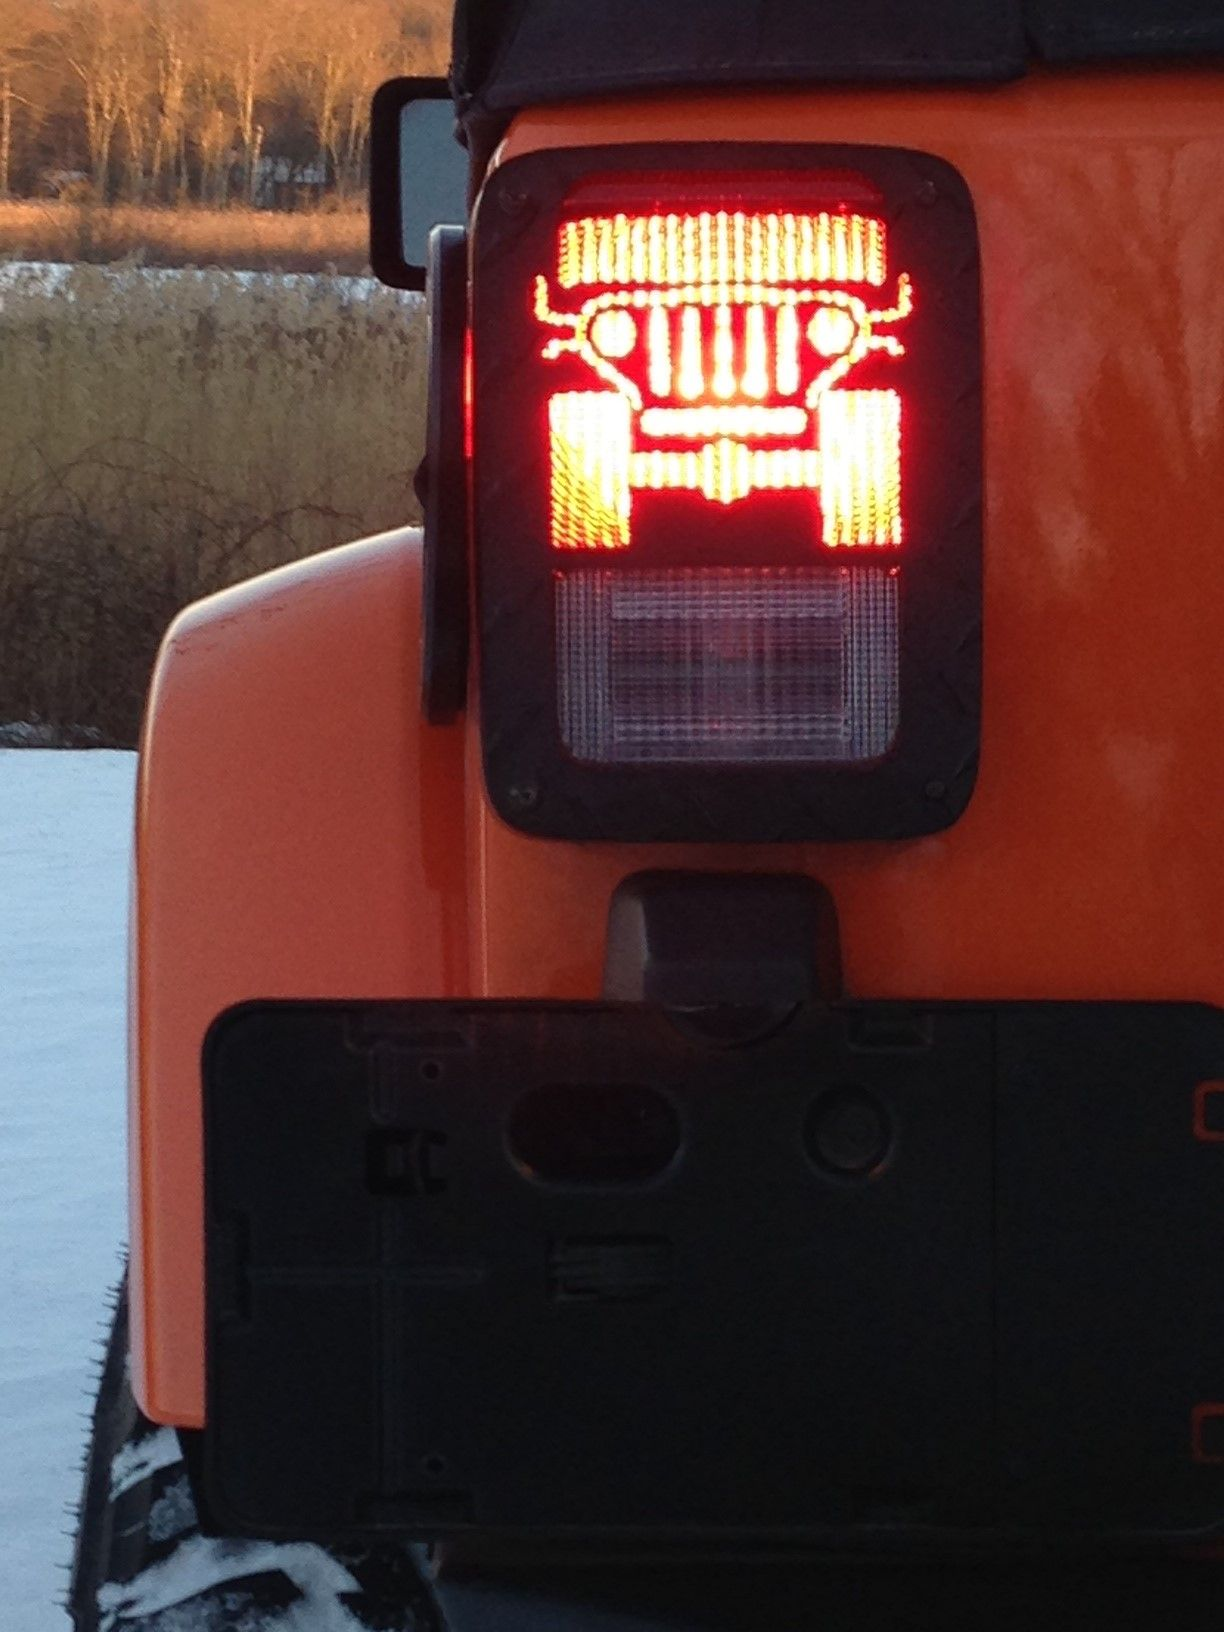 This One Of A Kind Tail Light Cover Made In The Usa Product